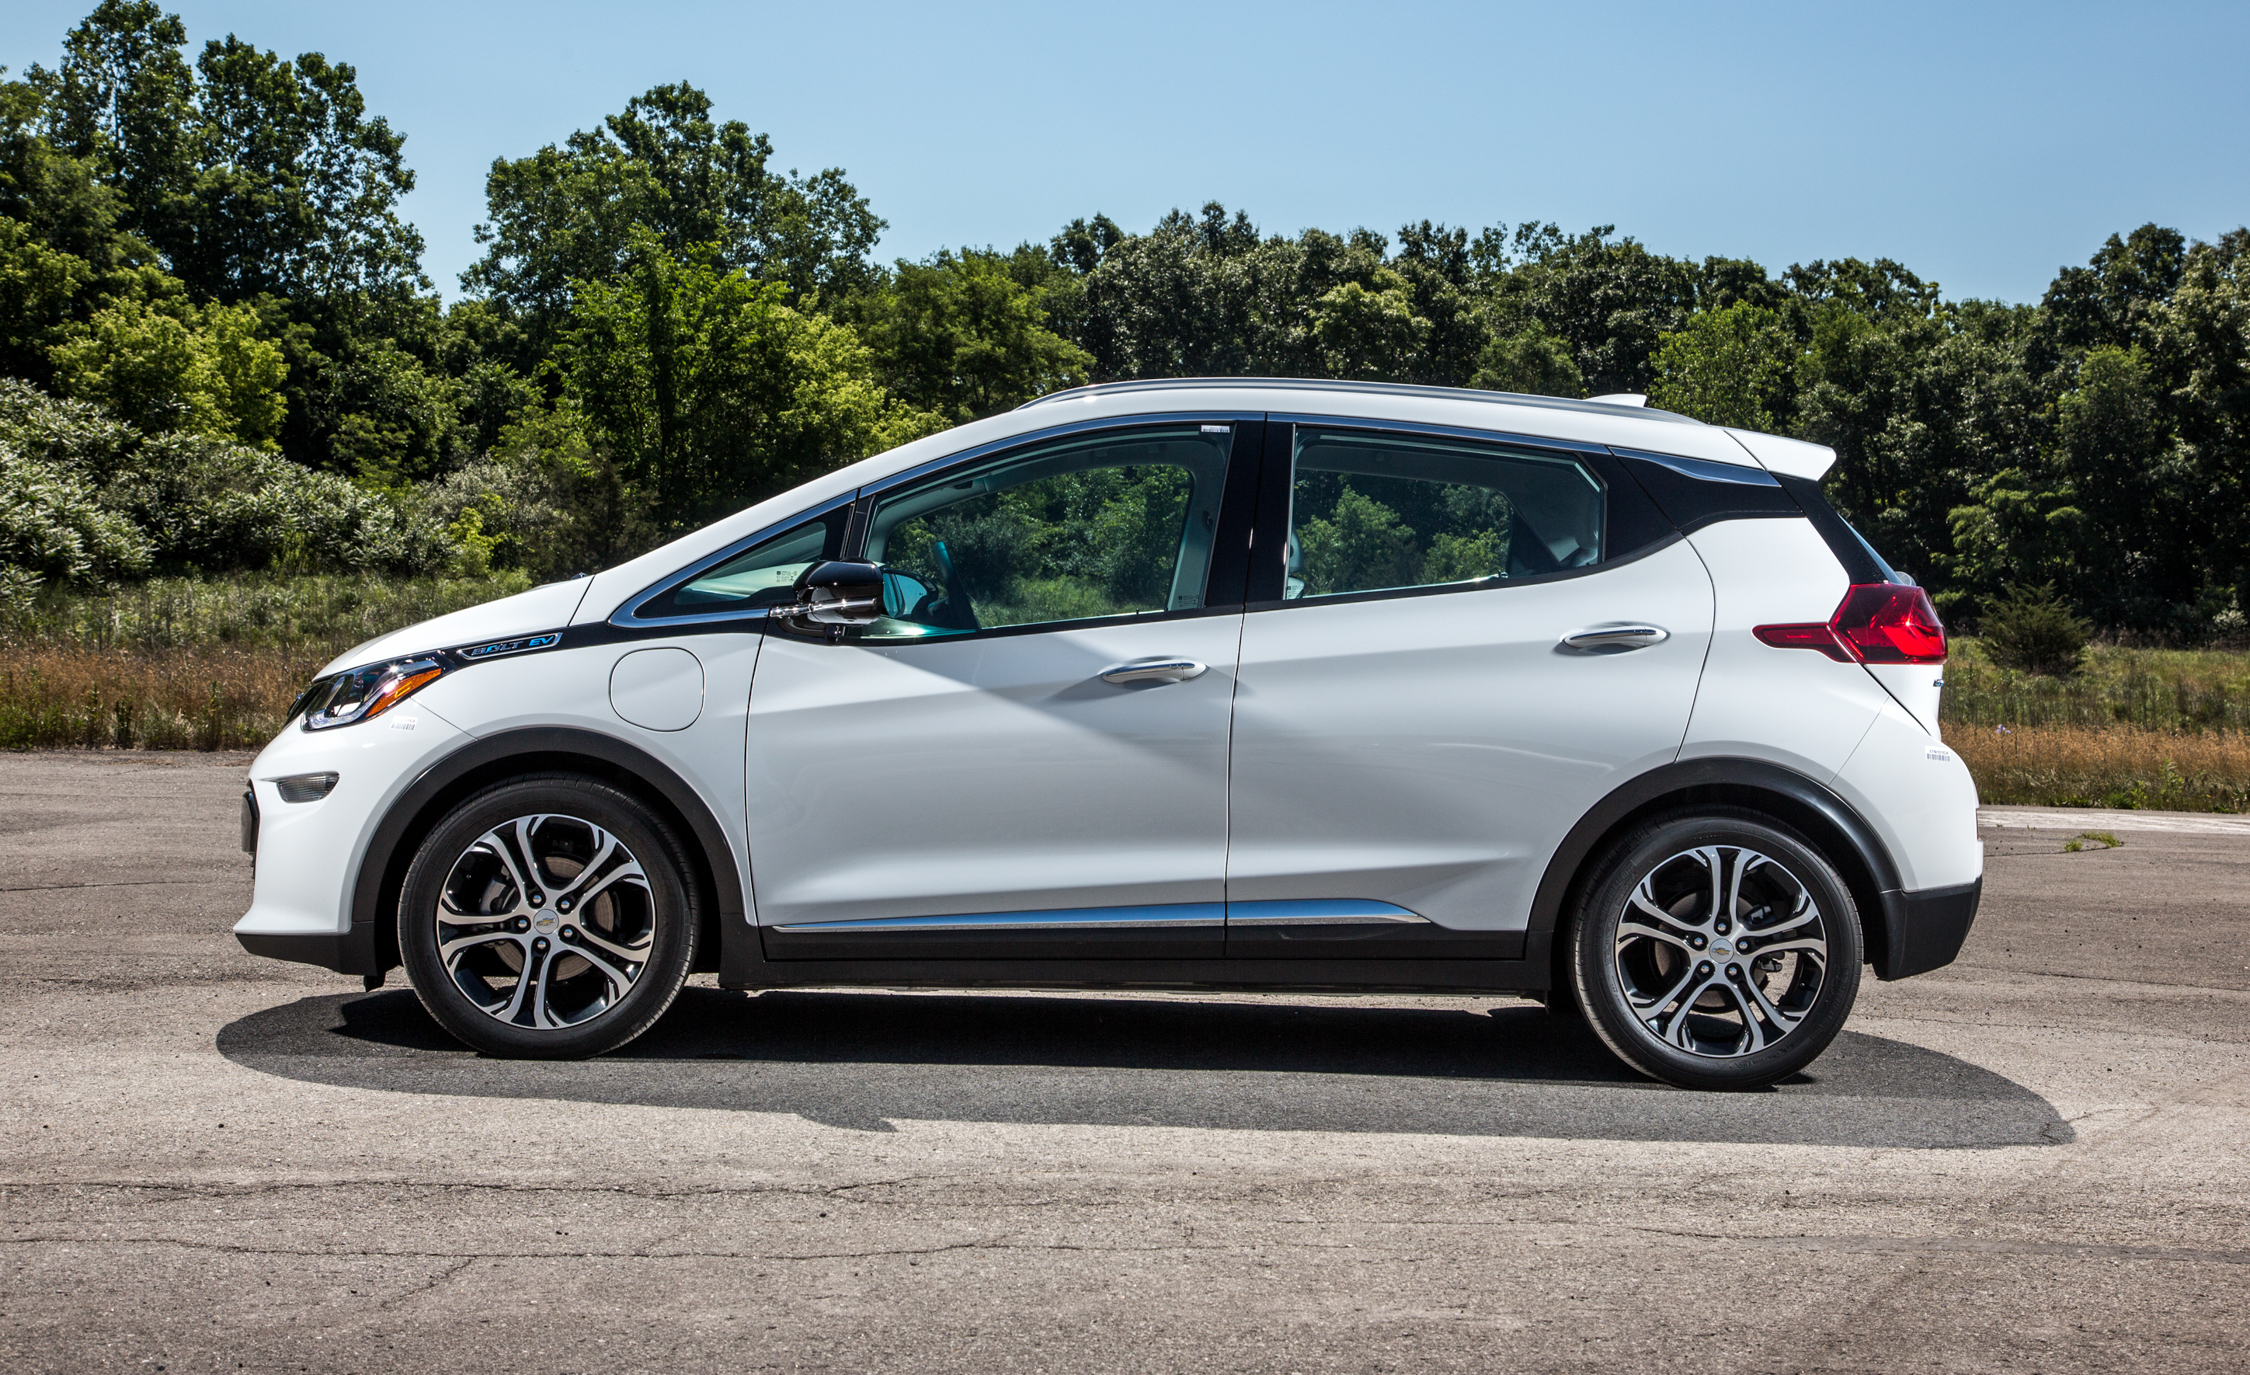 2017 Chevrolet Bolt Ev Exterior Side (Photo 5 of 12)